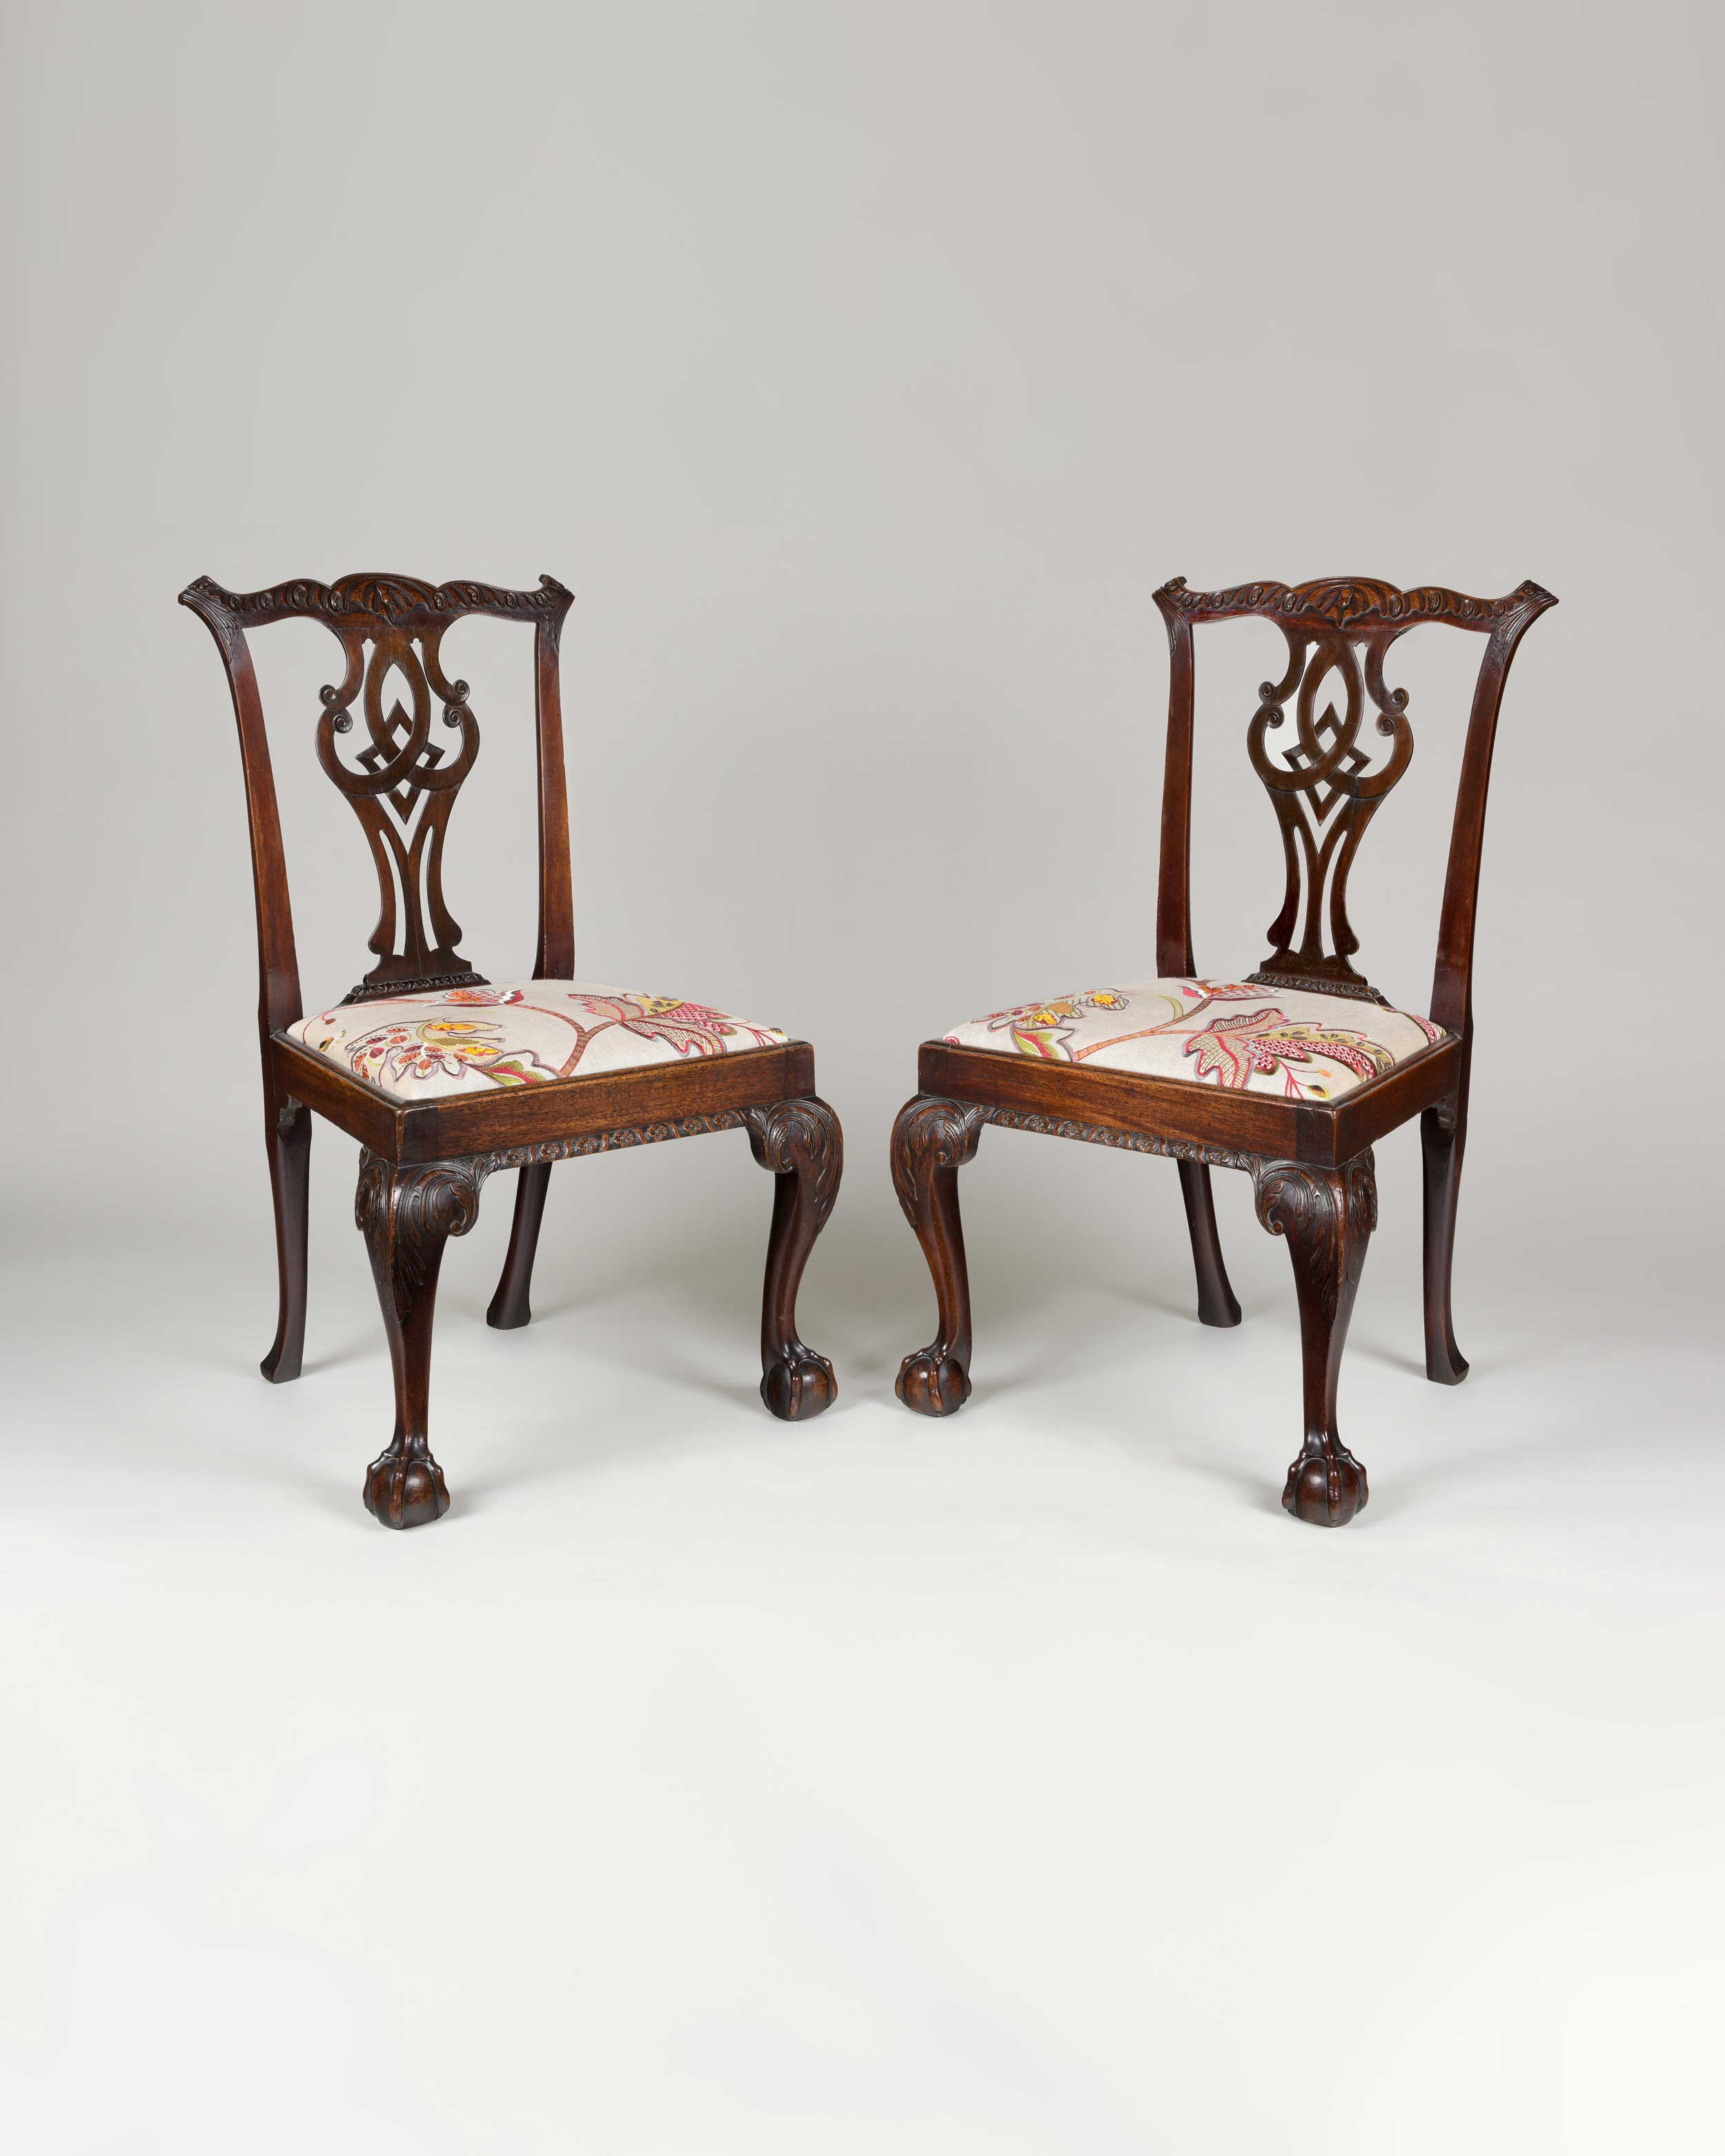 A PAIR OF CHIPPENDALE PERIOD MAHOGANY CHAIRS